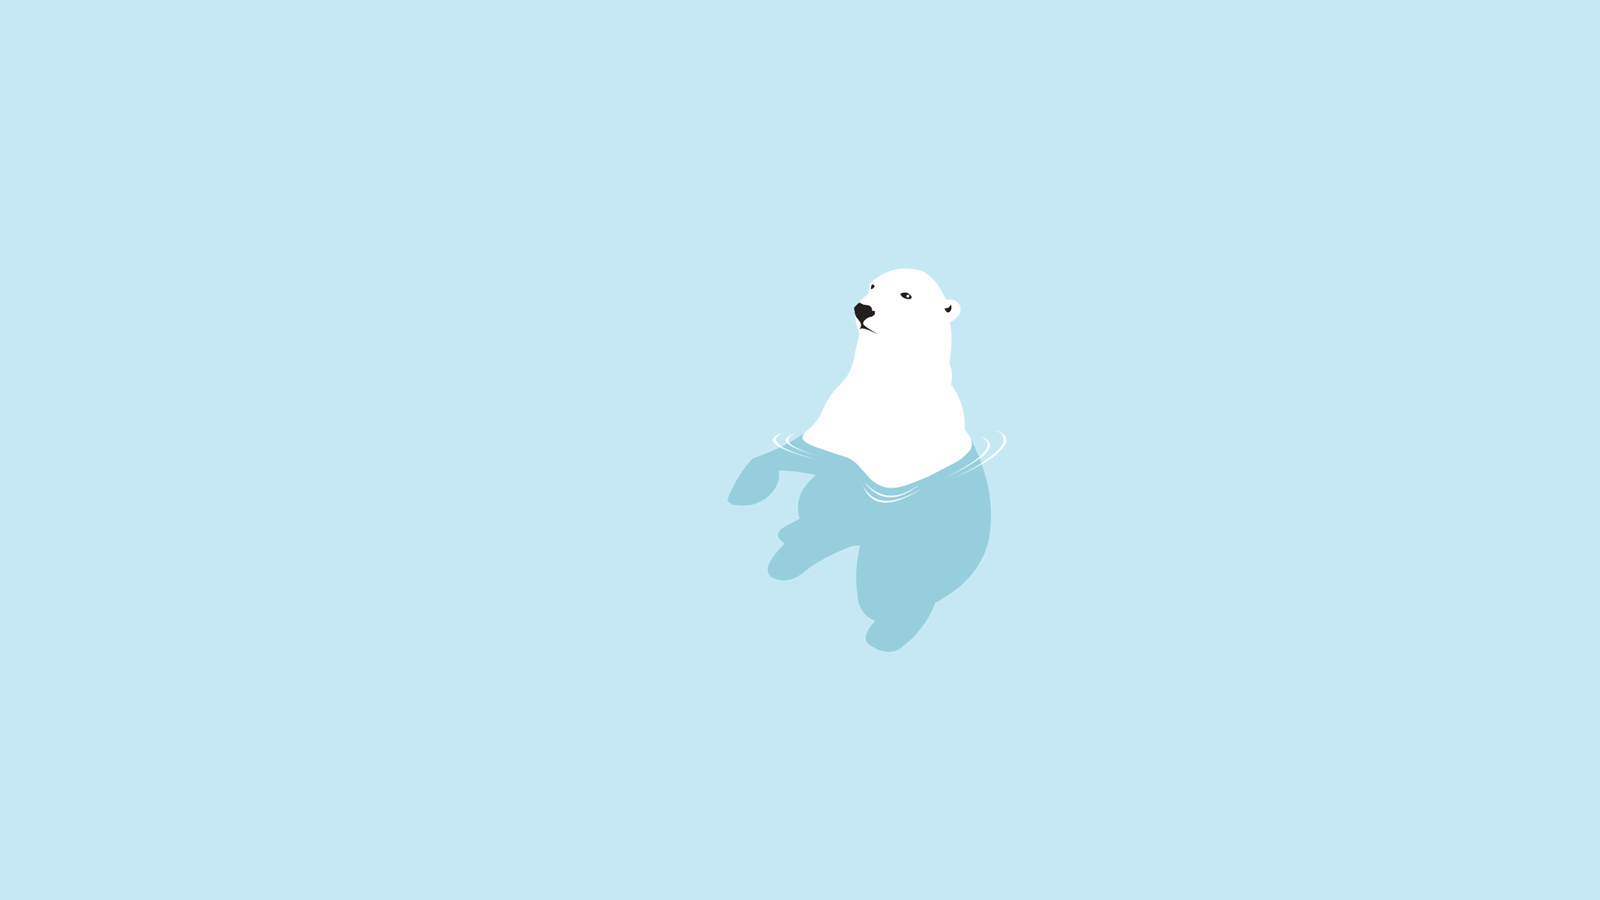 Polar Bear Wallpaper and Background Image | 1600x900 | ID:197706 - Wallpaper Abyss